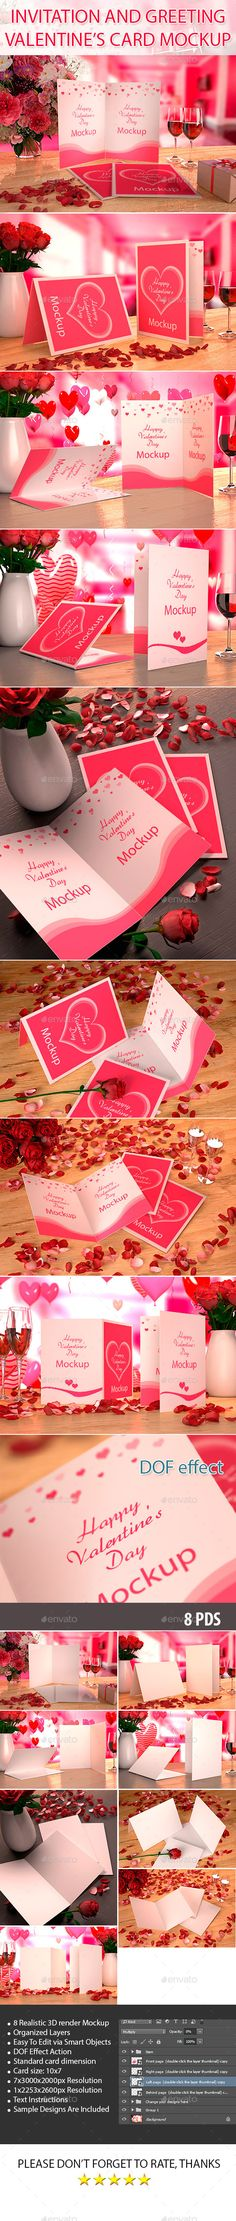 Valentine's card Mockup | Download: http://graphicriver.net/item/valentines-card-mockup/10169670?ref=ksioks